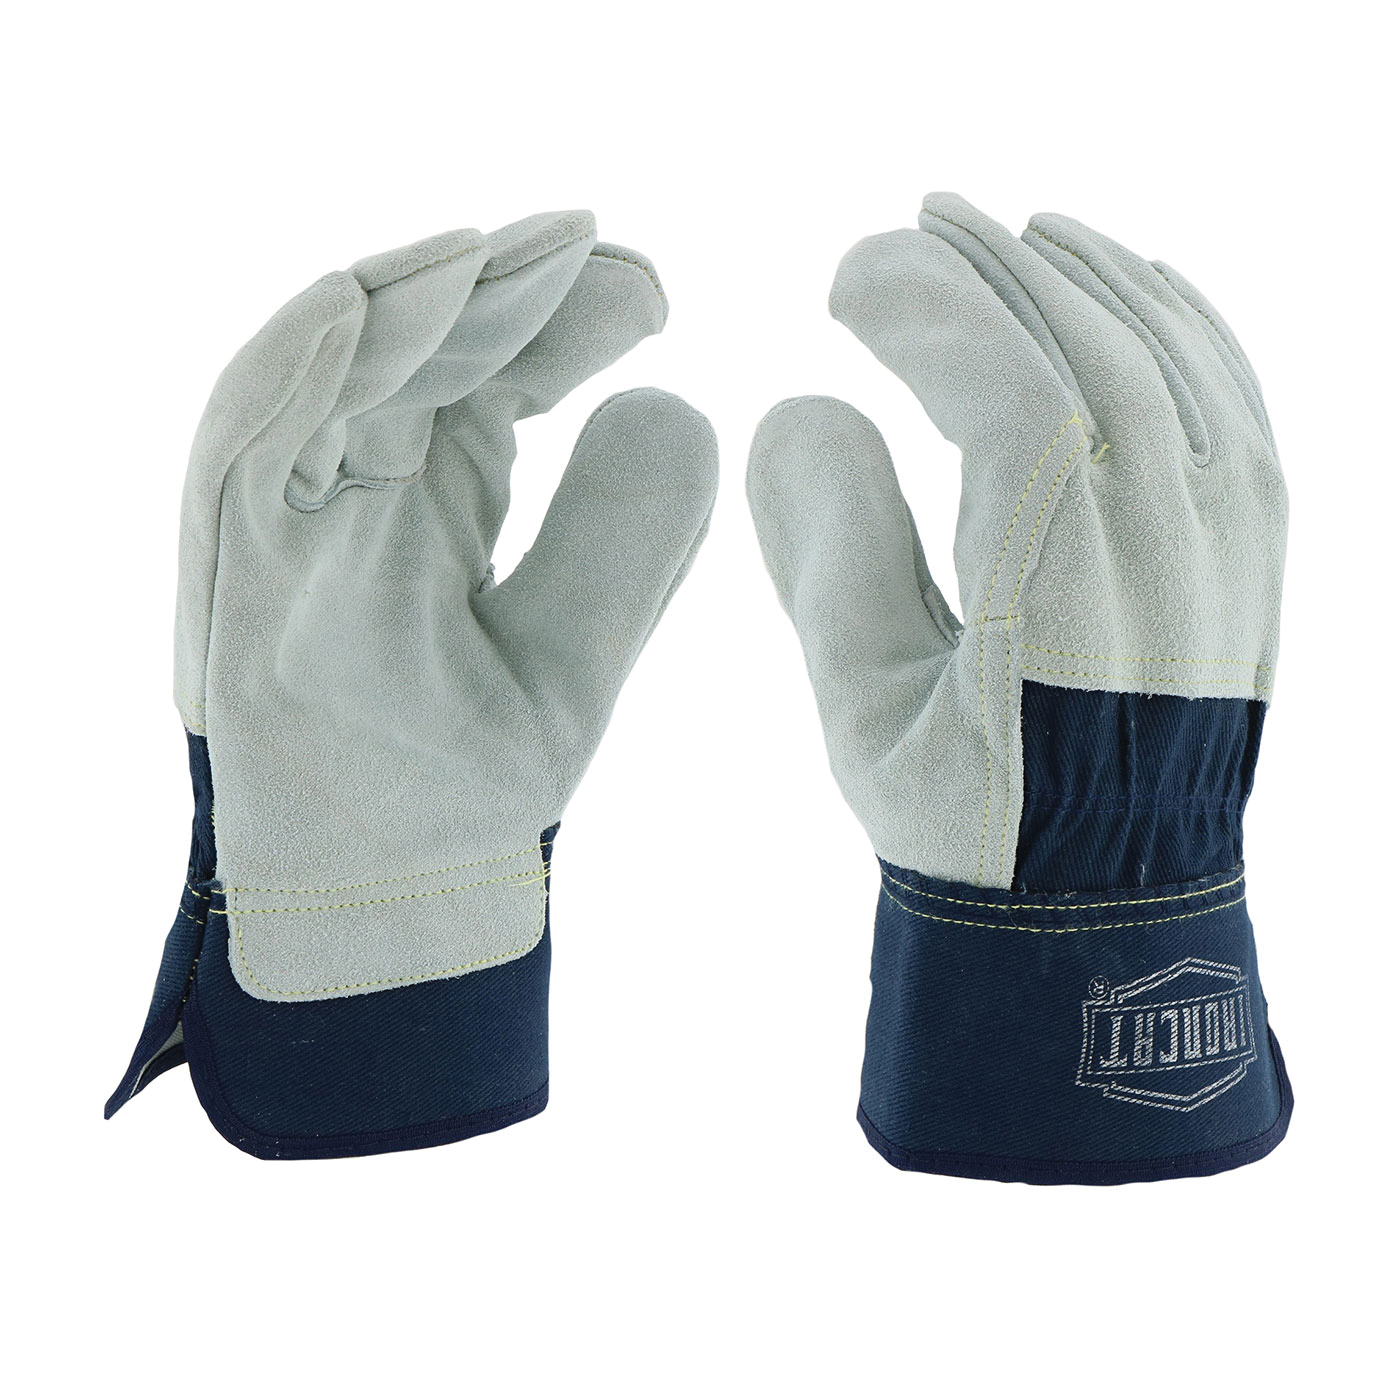 Ironcat® IC65/L Welding Gloves, L, Canvas/Kevlar®/Split Cowhide Leather, Blue/Gray, Cotton Lining, Rubberized Safety/Shirred Elastic Cuff, 10-1/2 in L